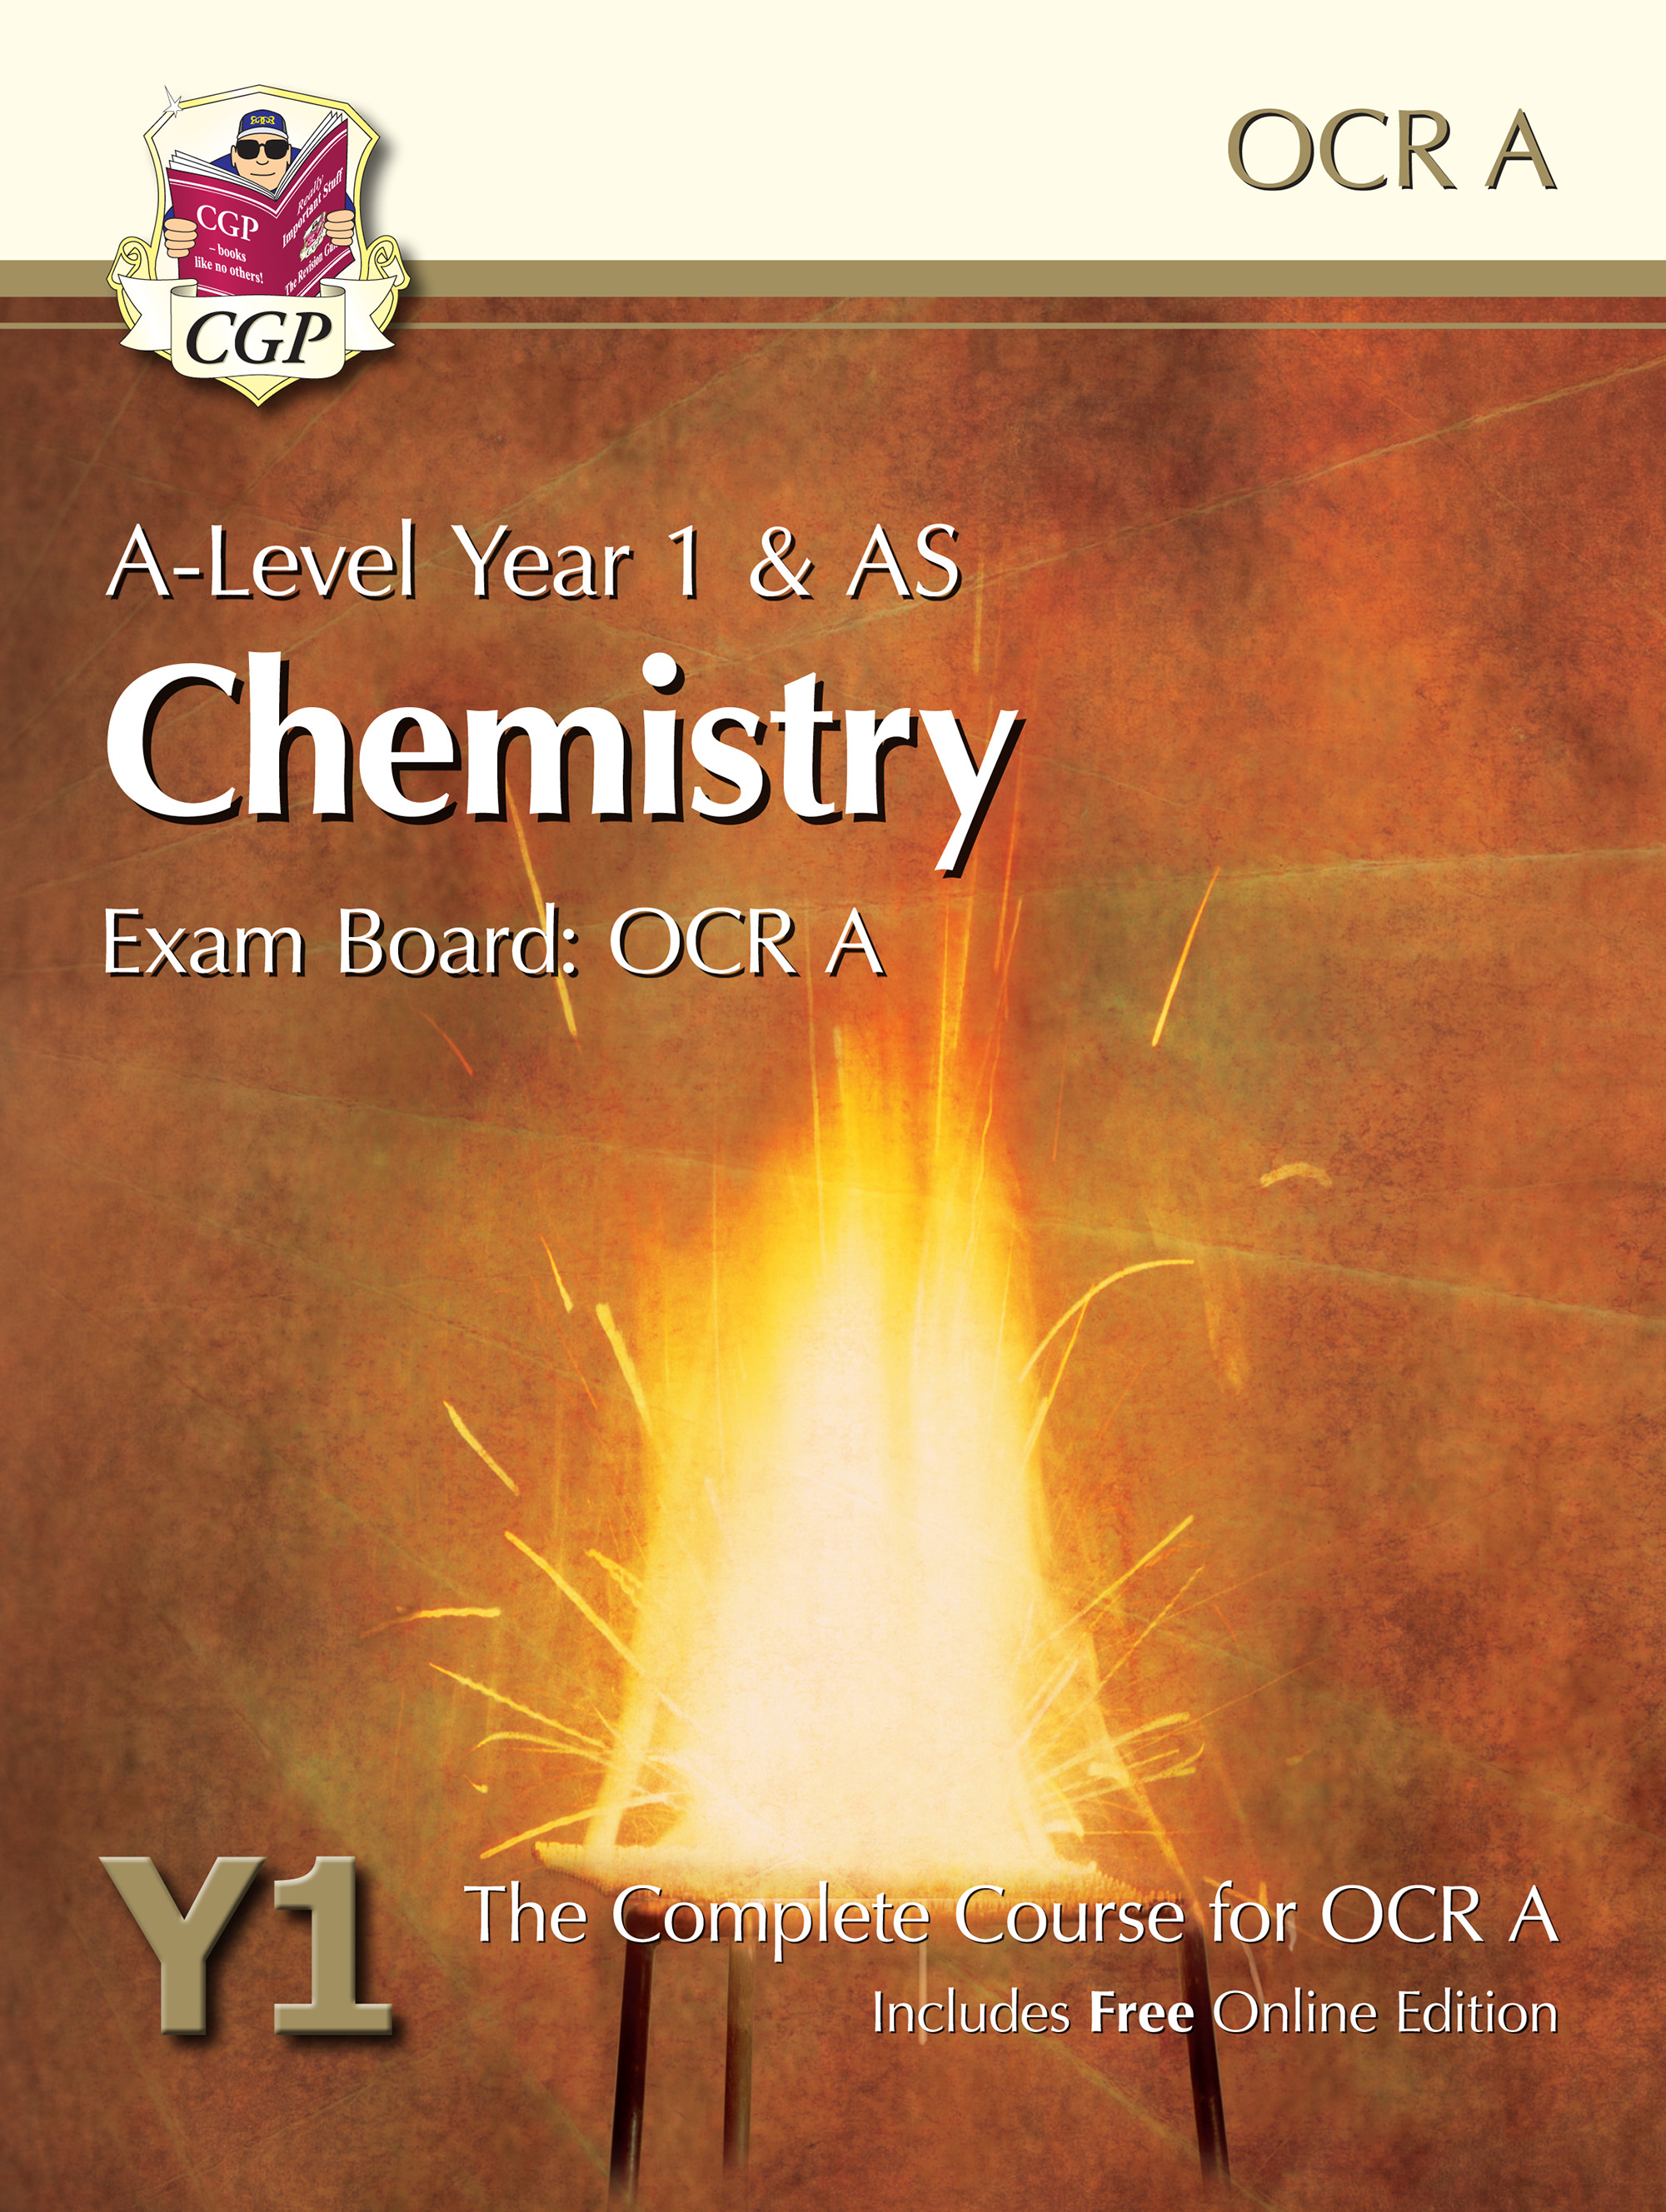 CRATB52 - A-Level Chemistry for OCR A: Year 1 & AS Student Book with Online Edition